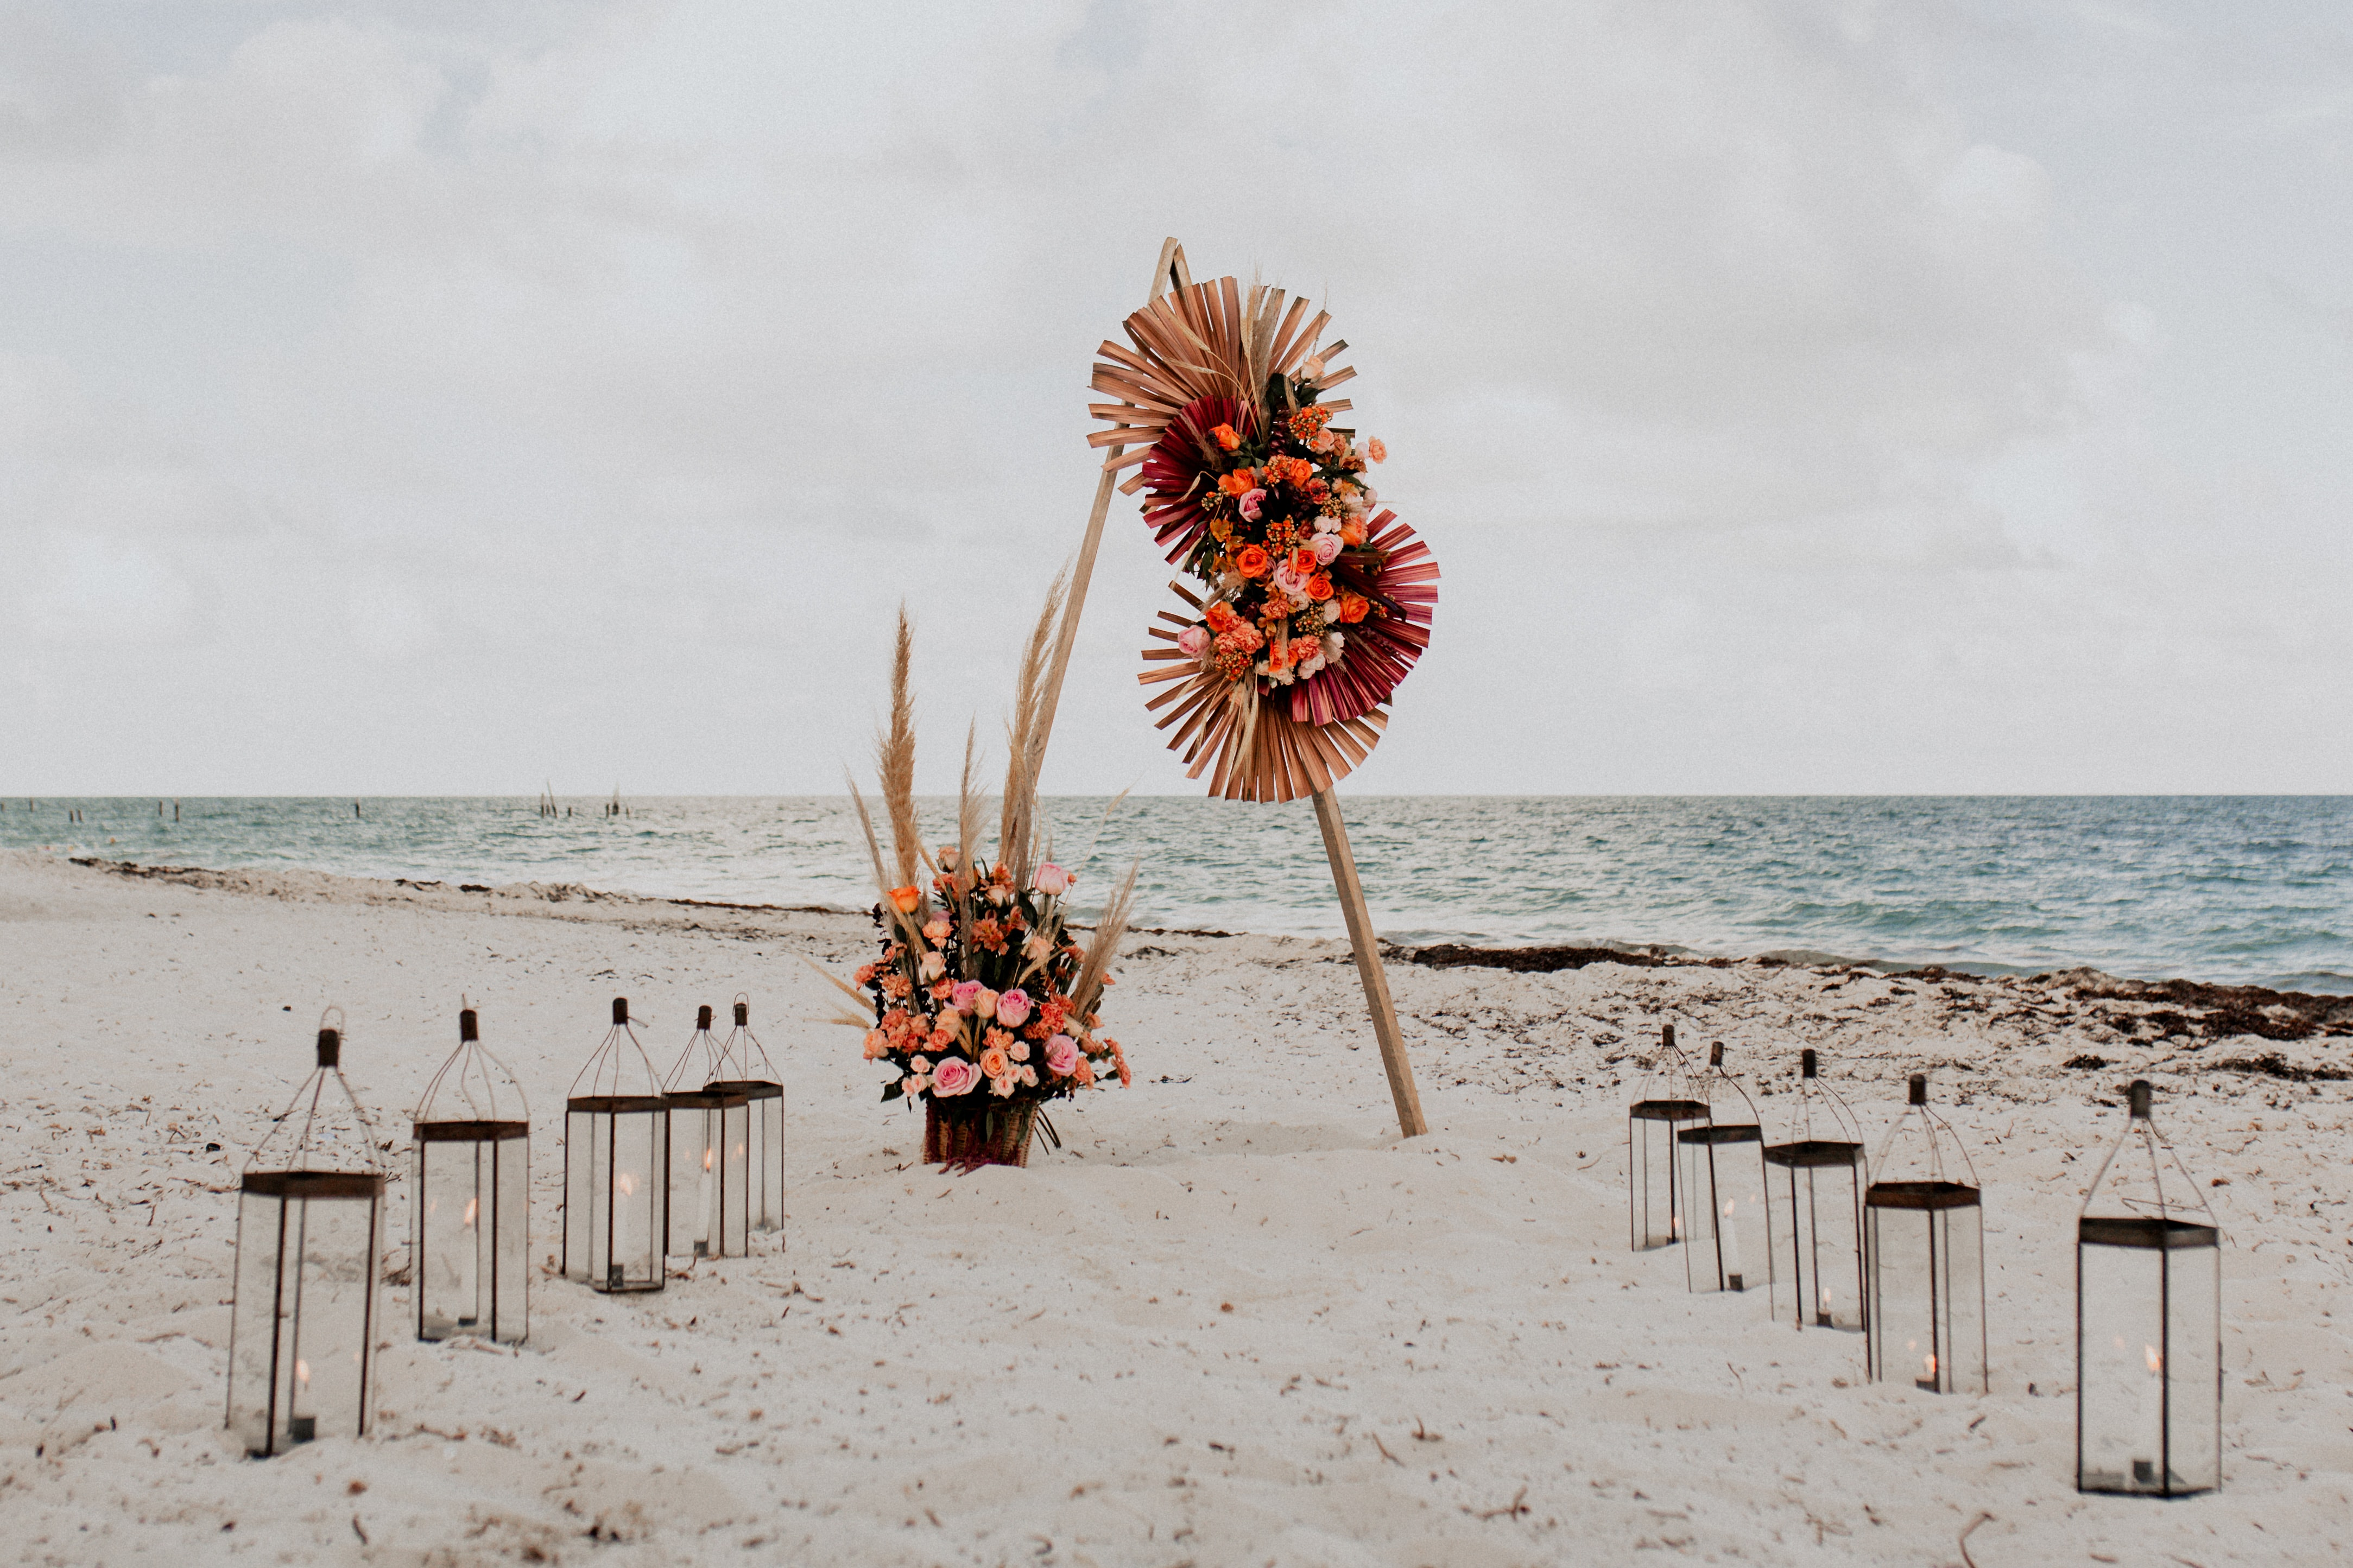 Stylish Elopement Shoot Inspiration for the Bohemian Bride, Planning & Design by Nabia Weddings & Events, for Mexico wedding blog Adriana Weddings